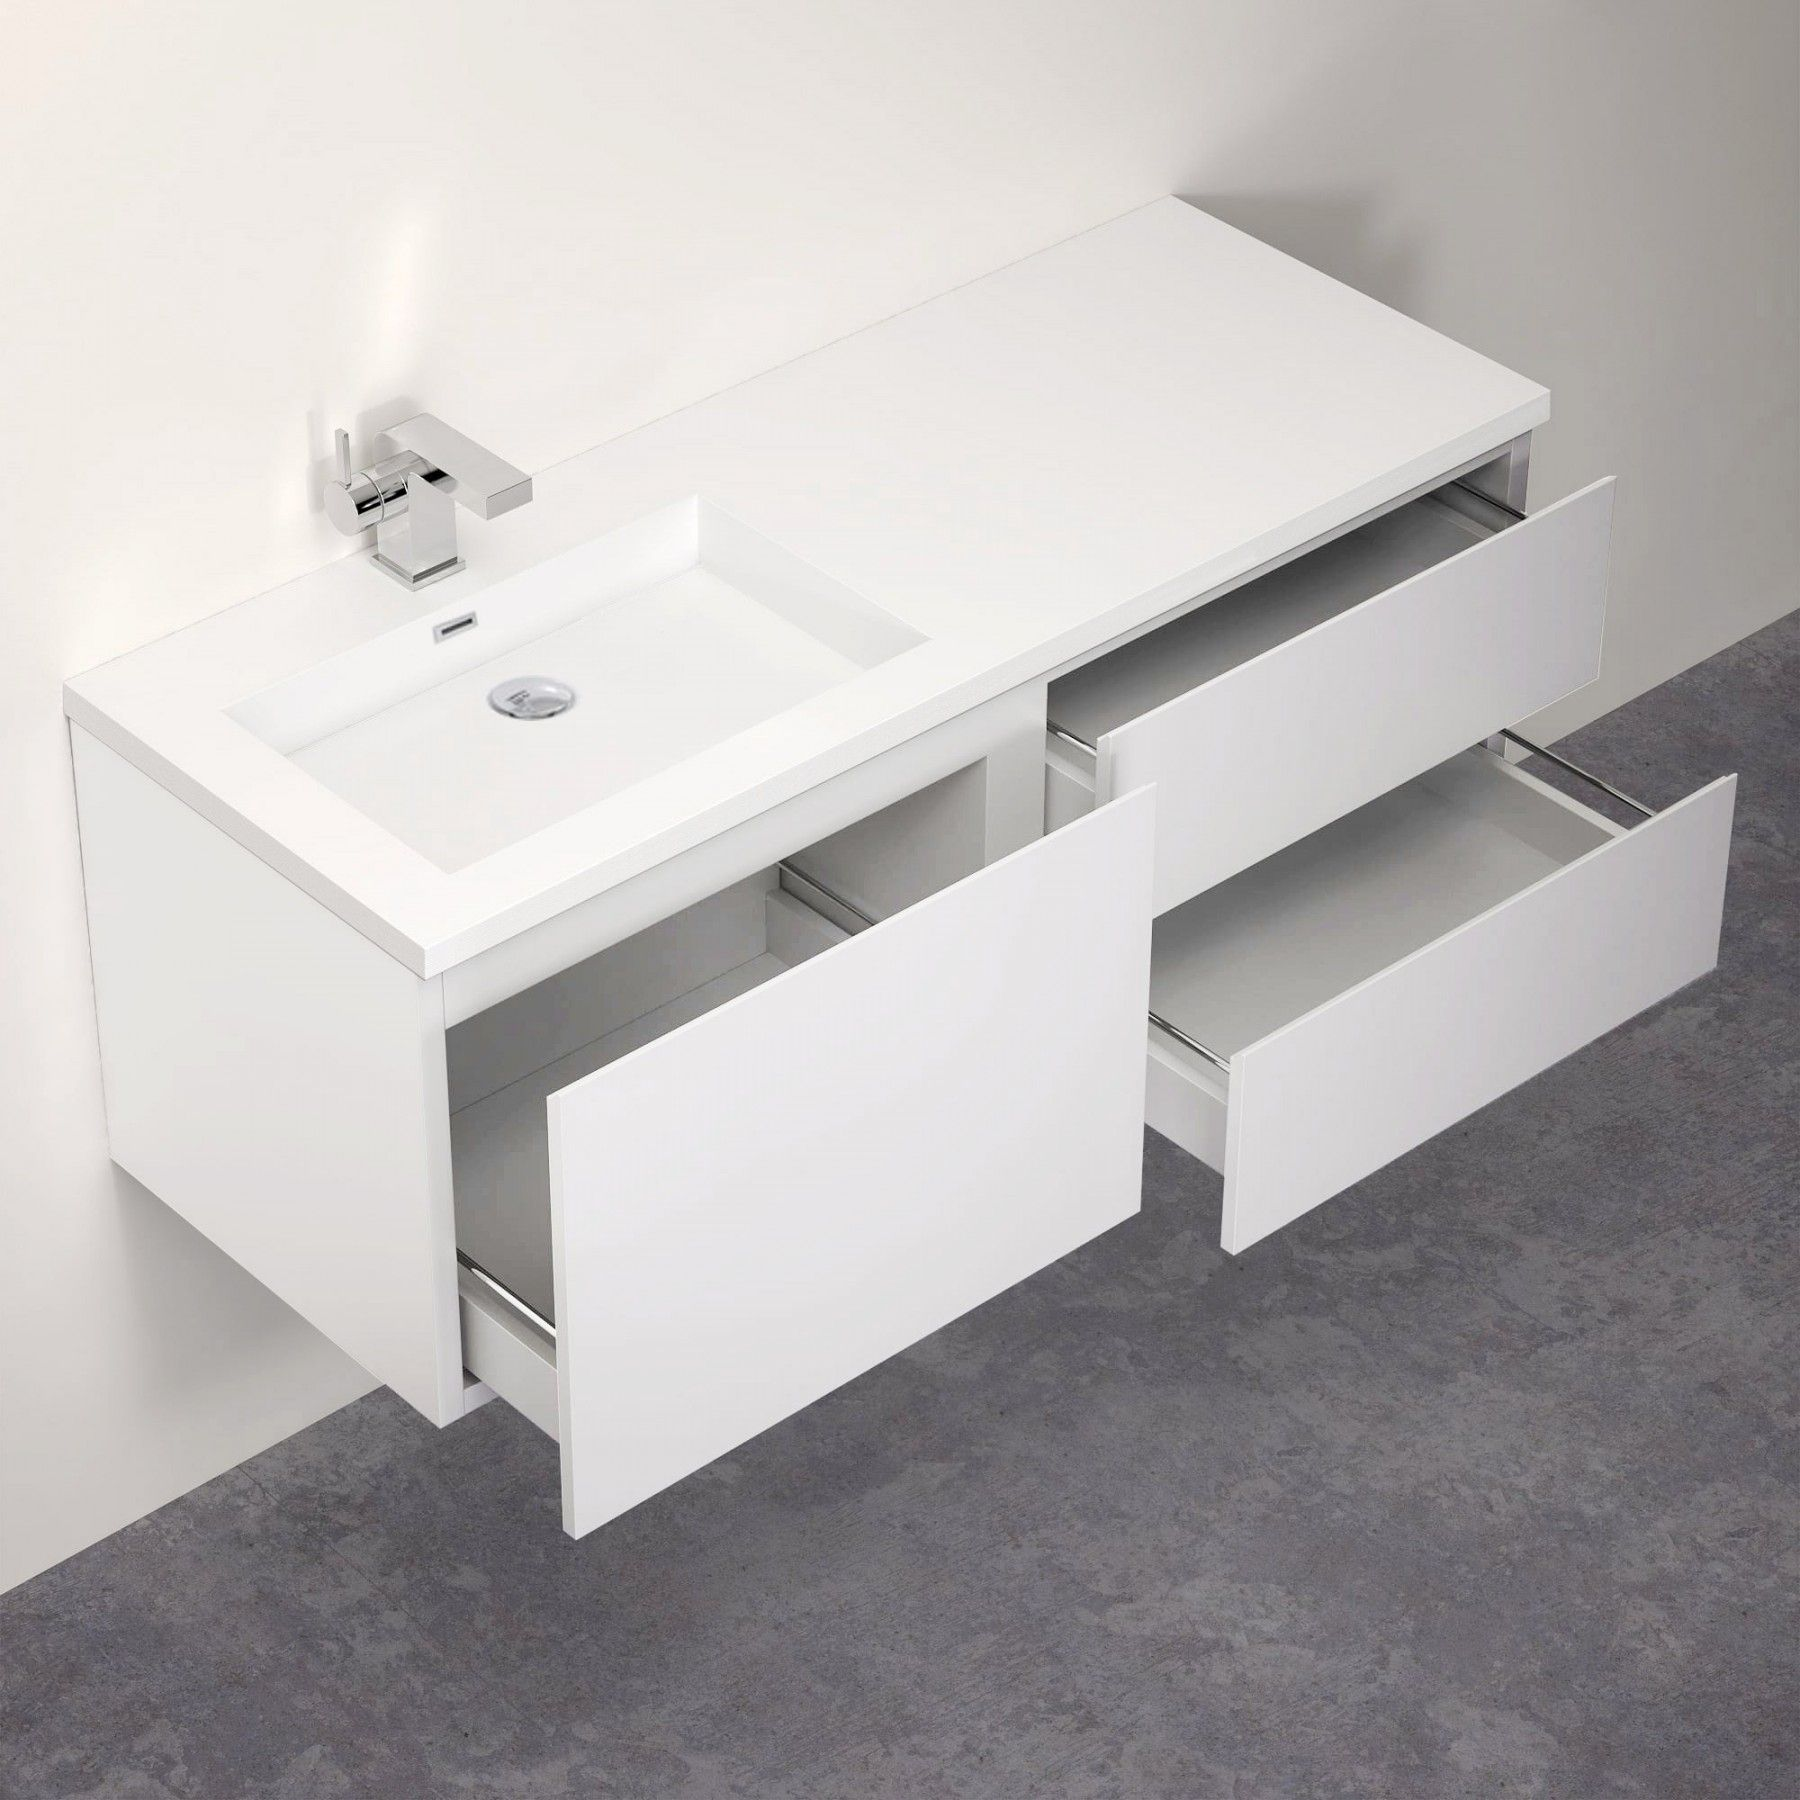 Wall Mounted Bathroom Vanity Unit Home Bauhaus Bauhaus Svelte 1200mm Wall Mounted Bathroom Vanity Unit Luxury Bathroom Bathroom Suites Uk Wall Hung Vanity